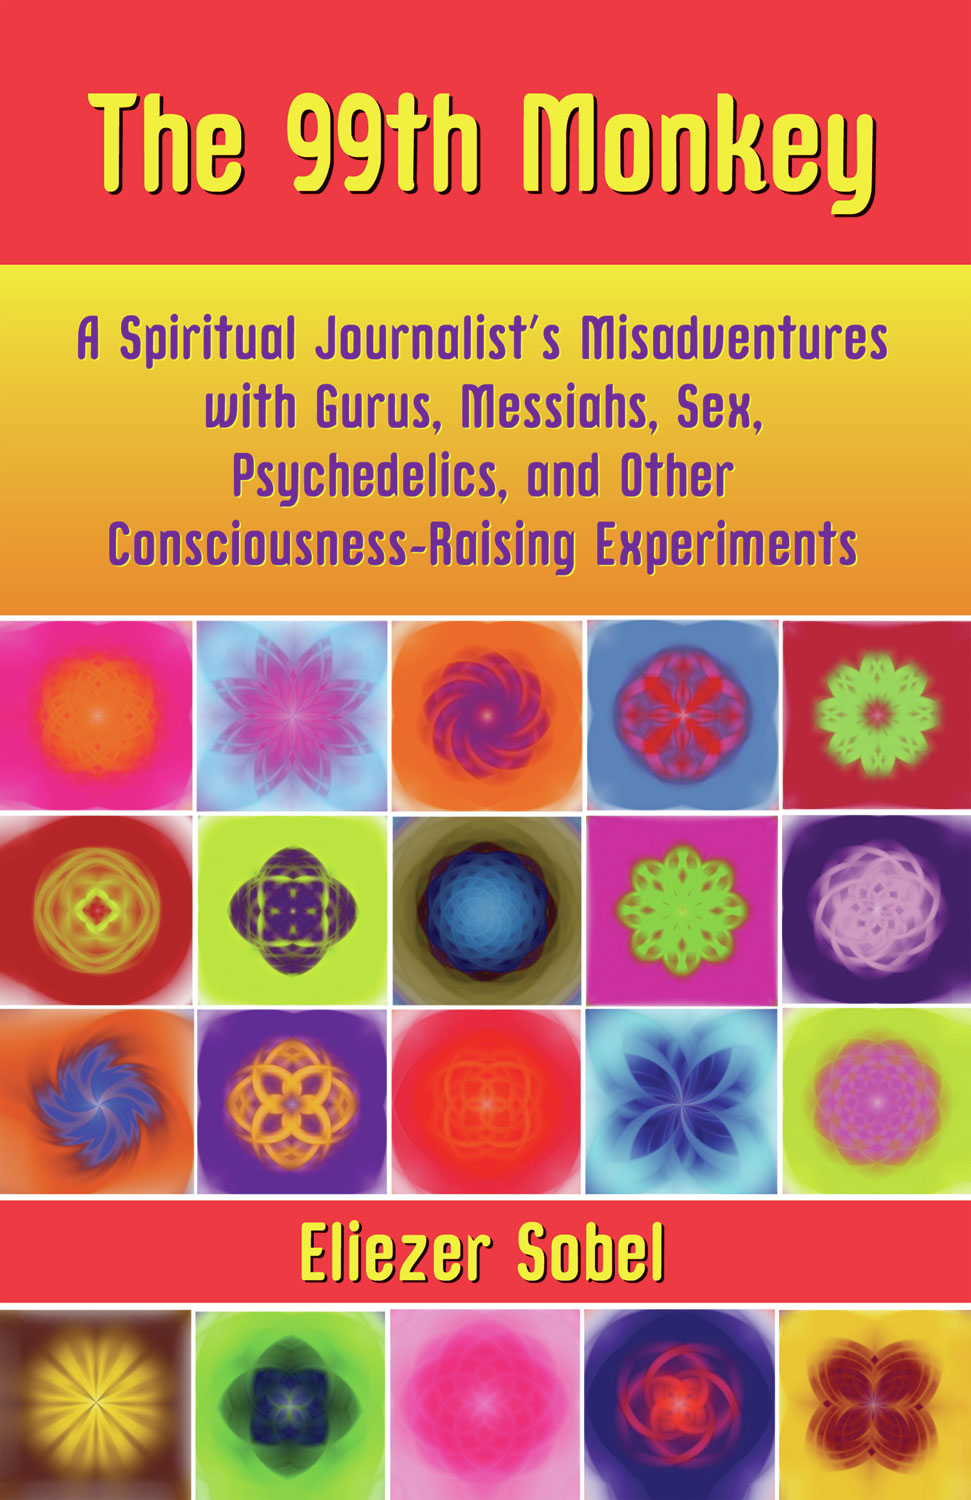 The 99th Monkey: A Spiritual Journalist's Misadventures with Gurus, Messiahs, Sex, Psychedelics, and Other Consciousness-Raising Experiments By: Eliezer Sobel